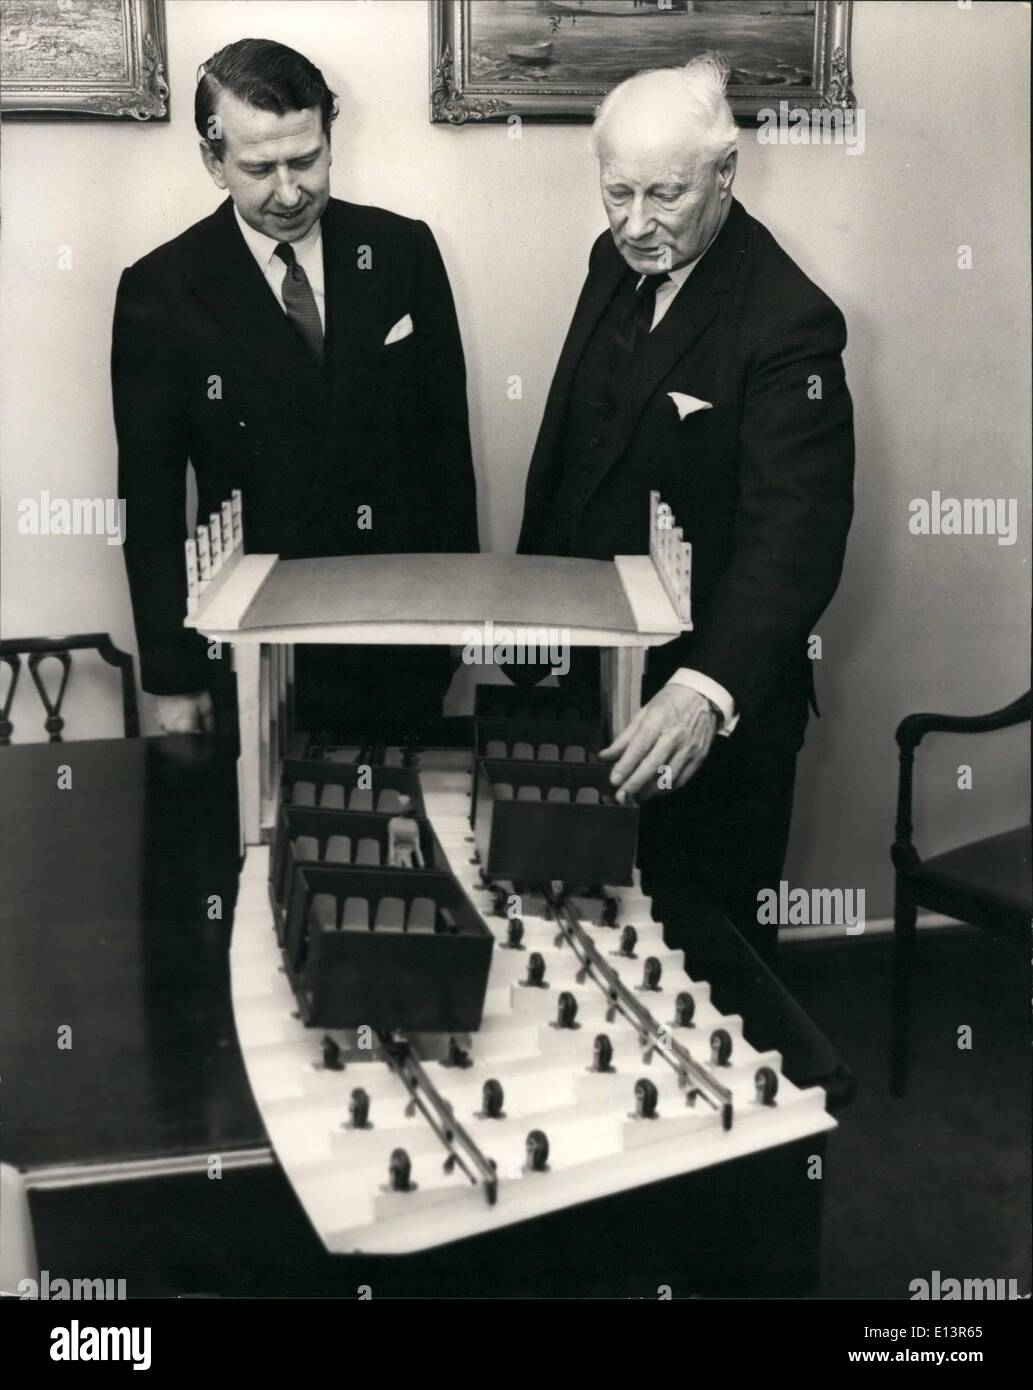 Mar. 22, 2012 - Complete Loop of I.A.A.S. Traffic report ''Overhead system'' to be built in London. Shadow Minister of Transport sees model of ''Passenveyor''. Mr. C.W. Glover, P.P.I.A.A.S., Mi.O.E., Struct.E., a past president of the Association and pioneer of the Passenveyor described in the 2nd. Traffic Report published by the Incorporated Association of Architects disclosed that negotiations are taking place between the Passenveyor or Company and authorities concerned for a site near Staines to set up a complete loop for interested parties from all over the world to ride in and full - Stock Image